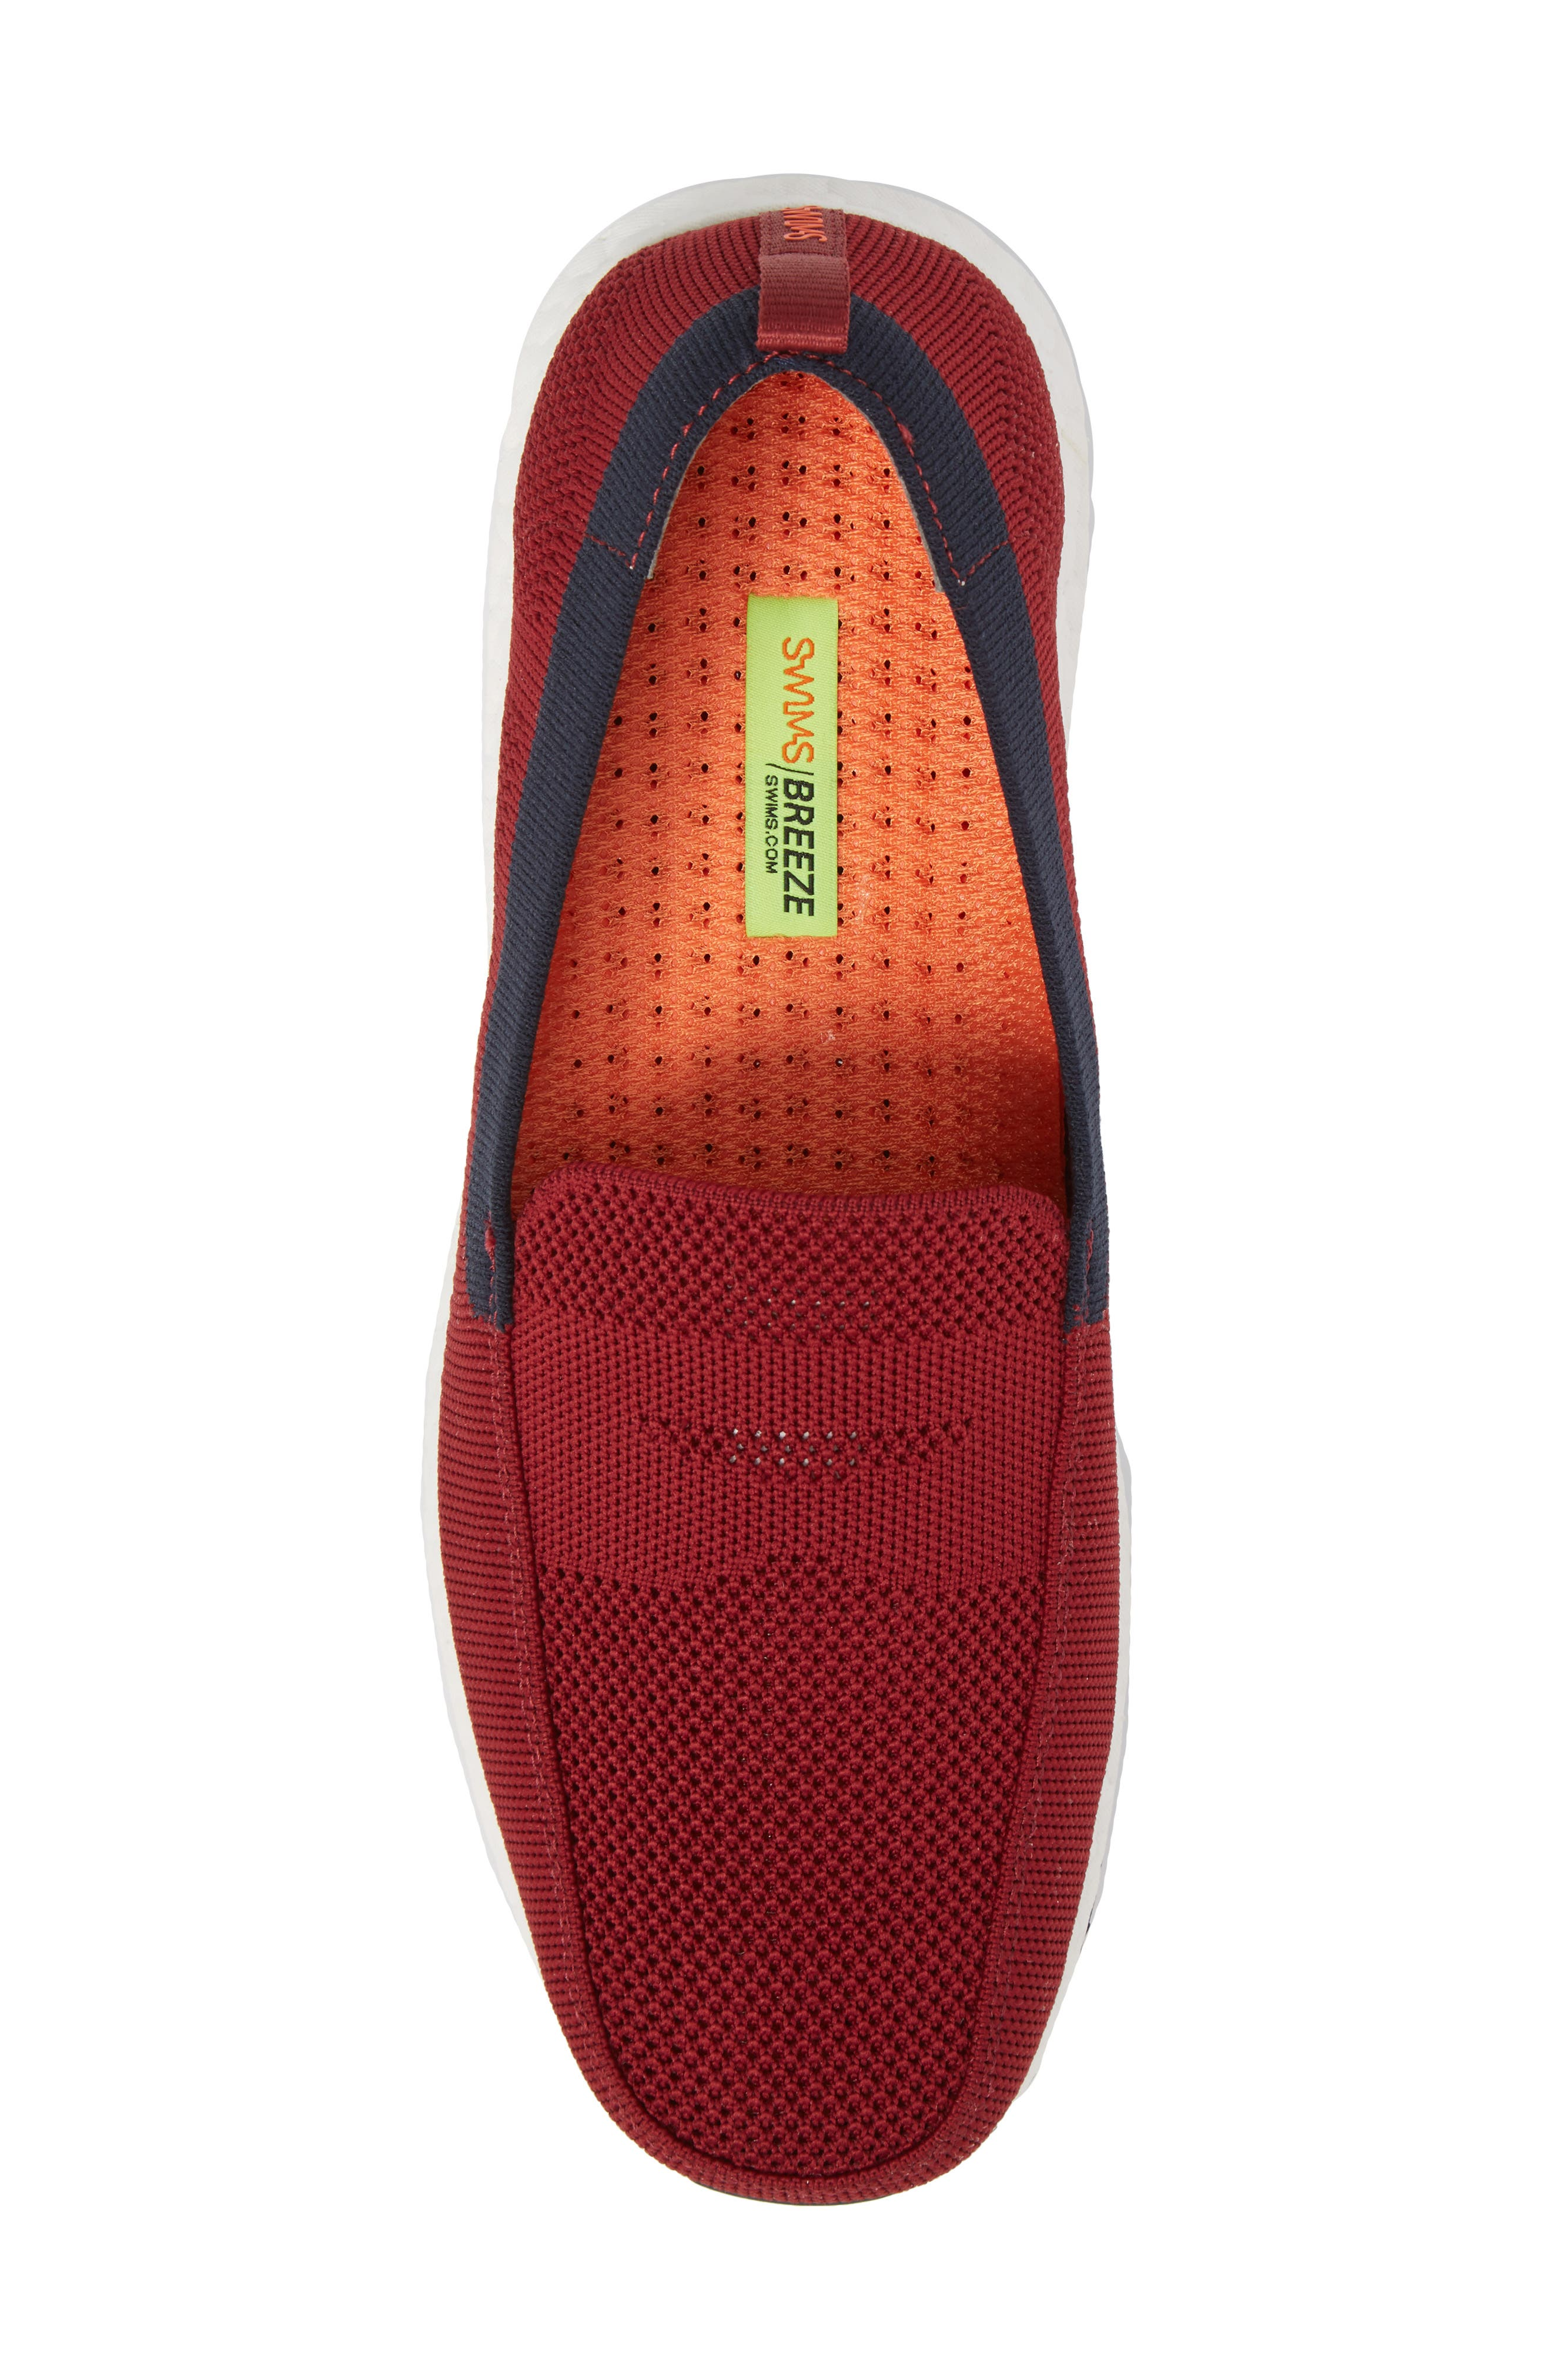 Breeze Leap Penny Loafer,                             Alternate thumbnail 5, color,                             600